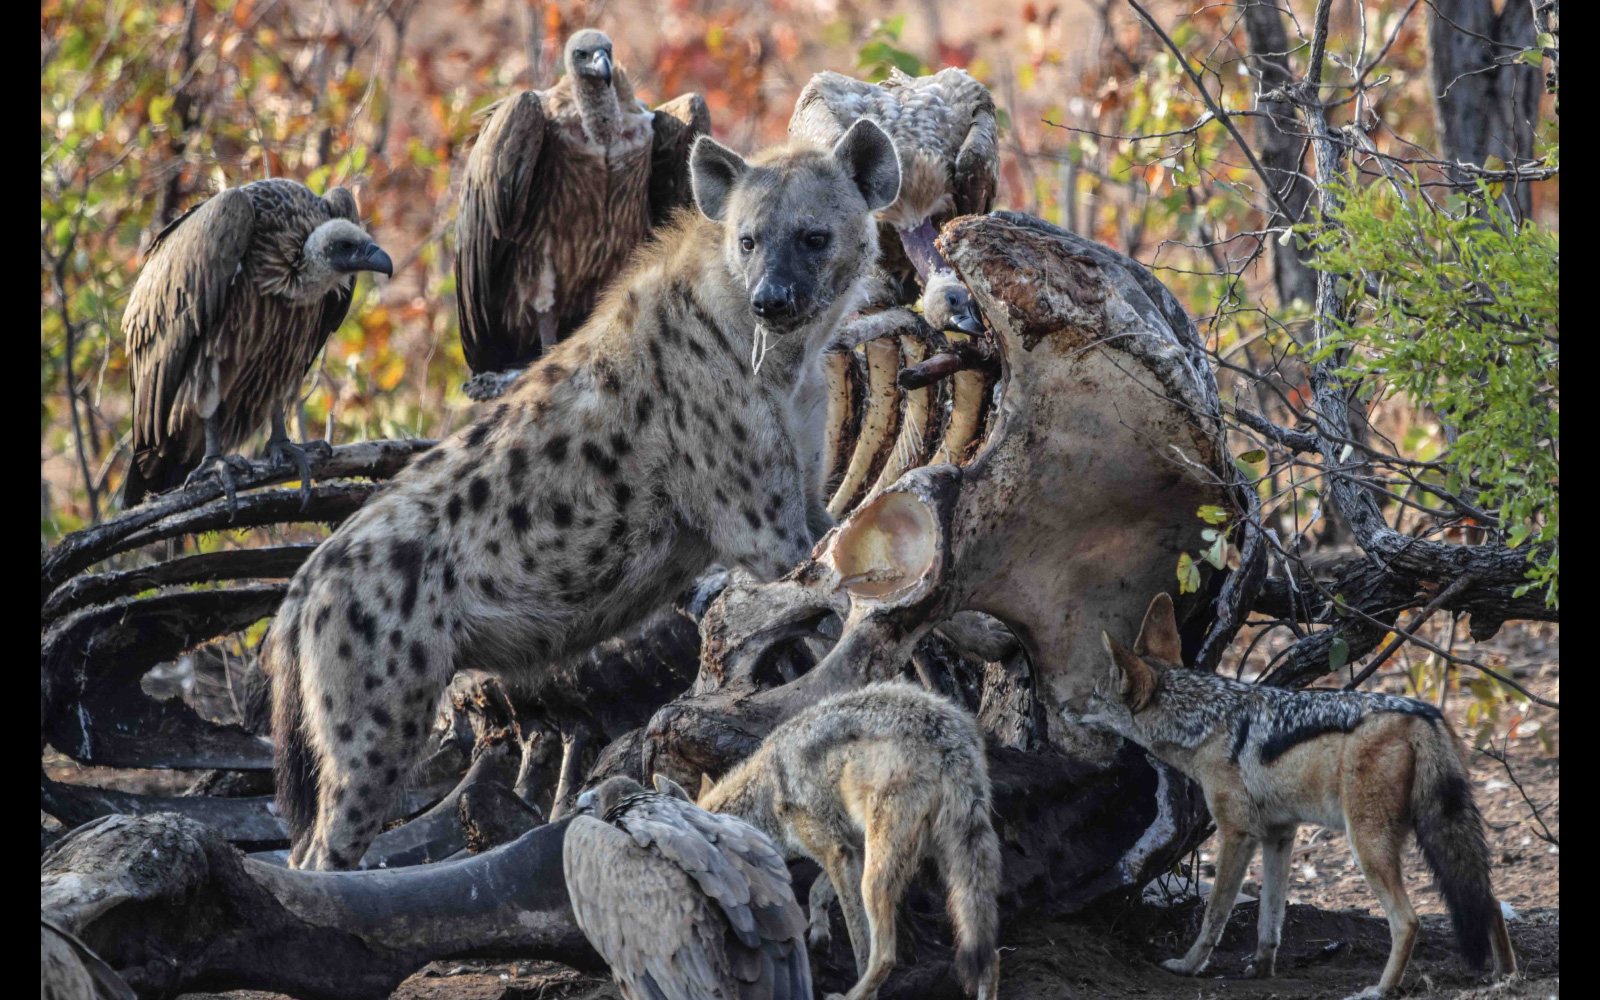 Black-backed jackals, a spotted hyena and white-backed vultures feed on the leftovers of an elephant carcass, Kruger National Park, South Africa © Yolandi Roux